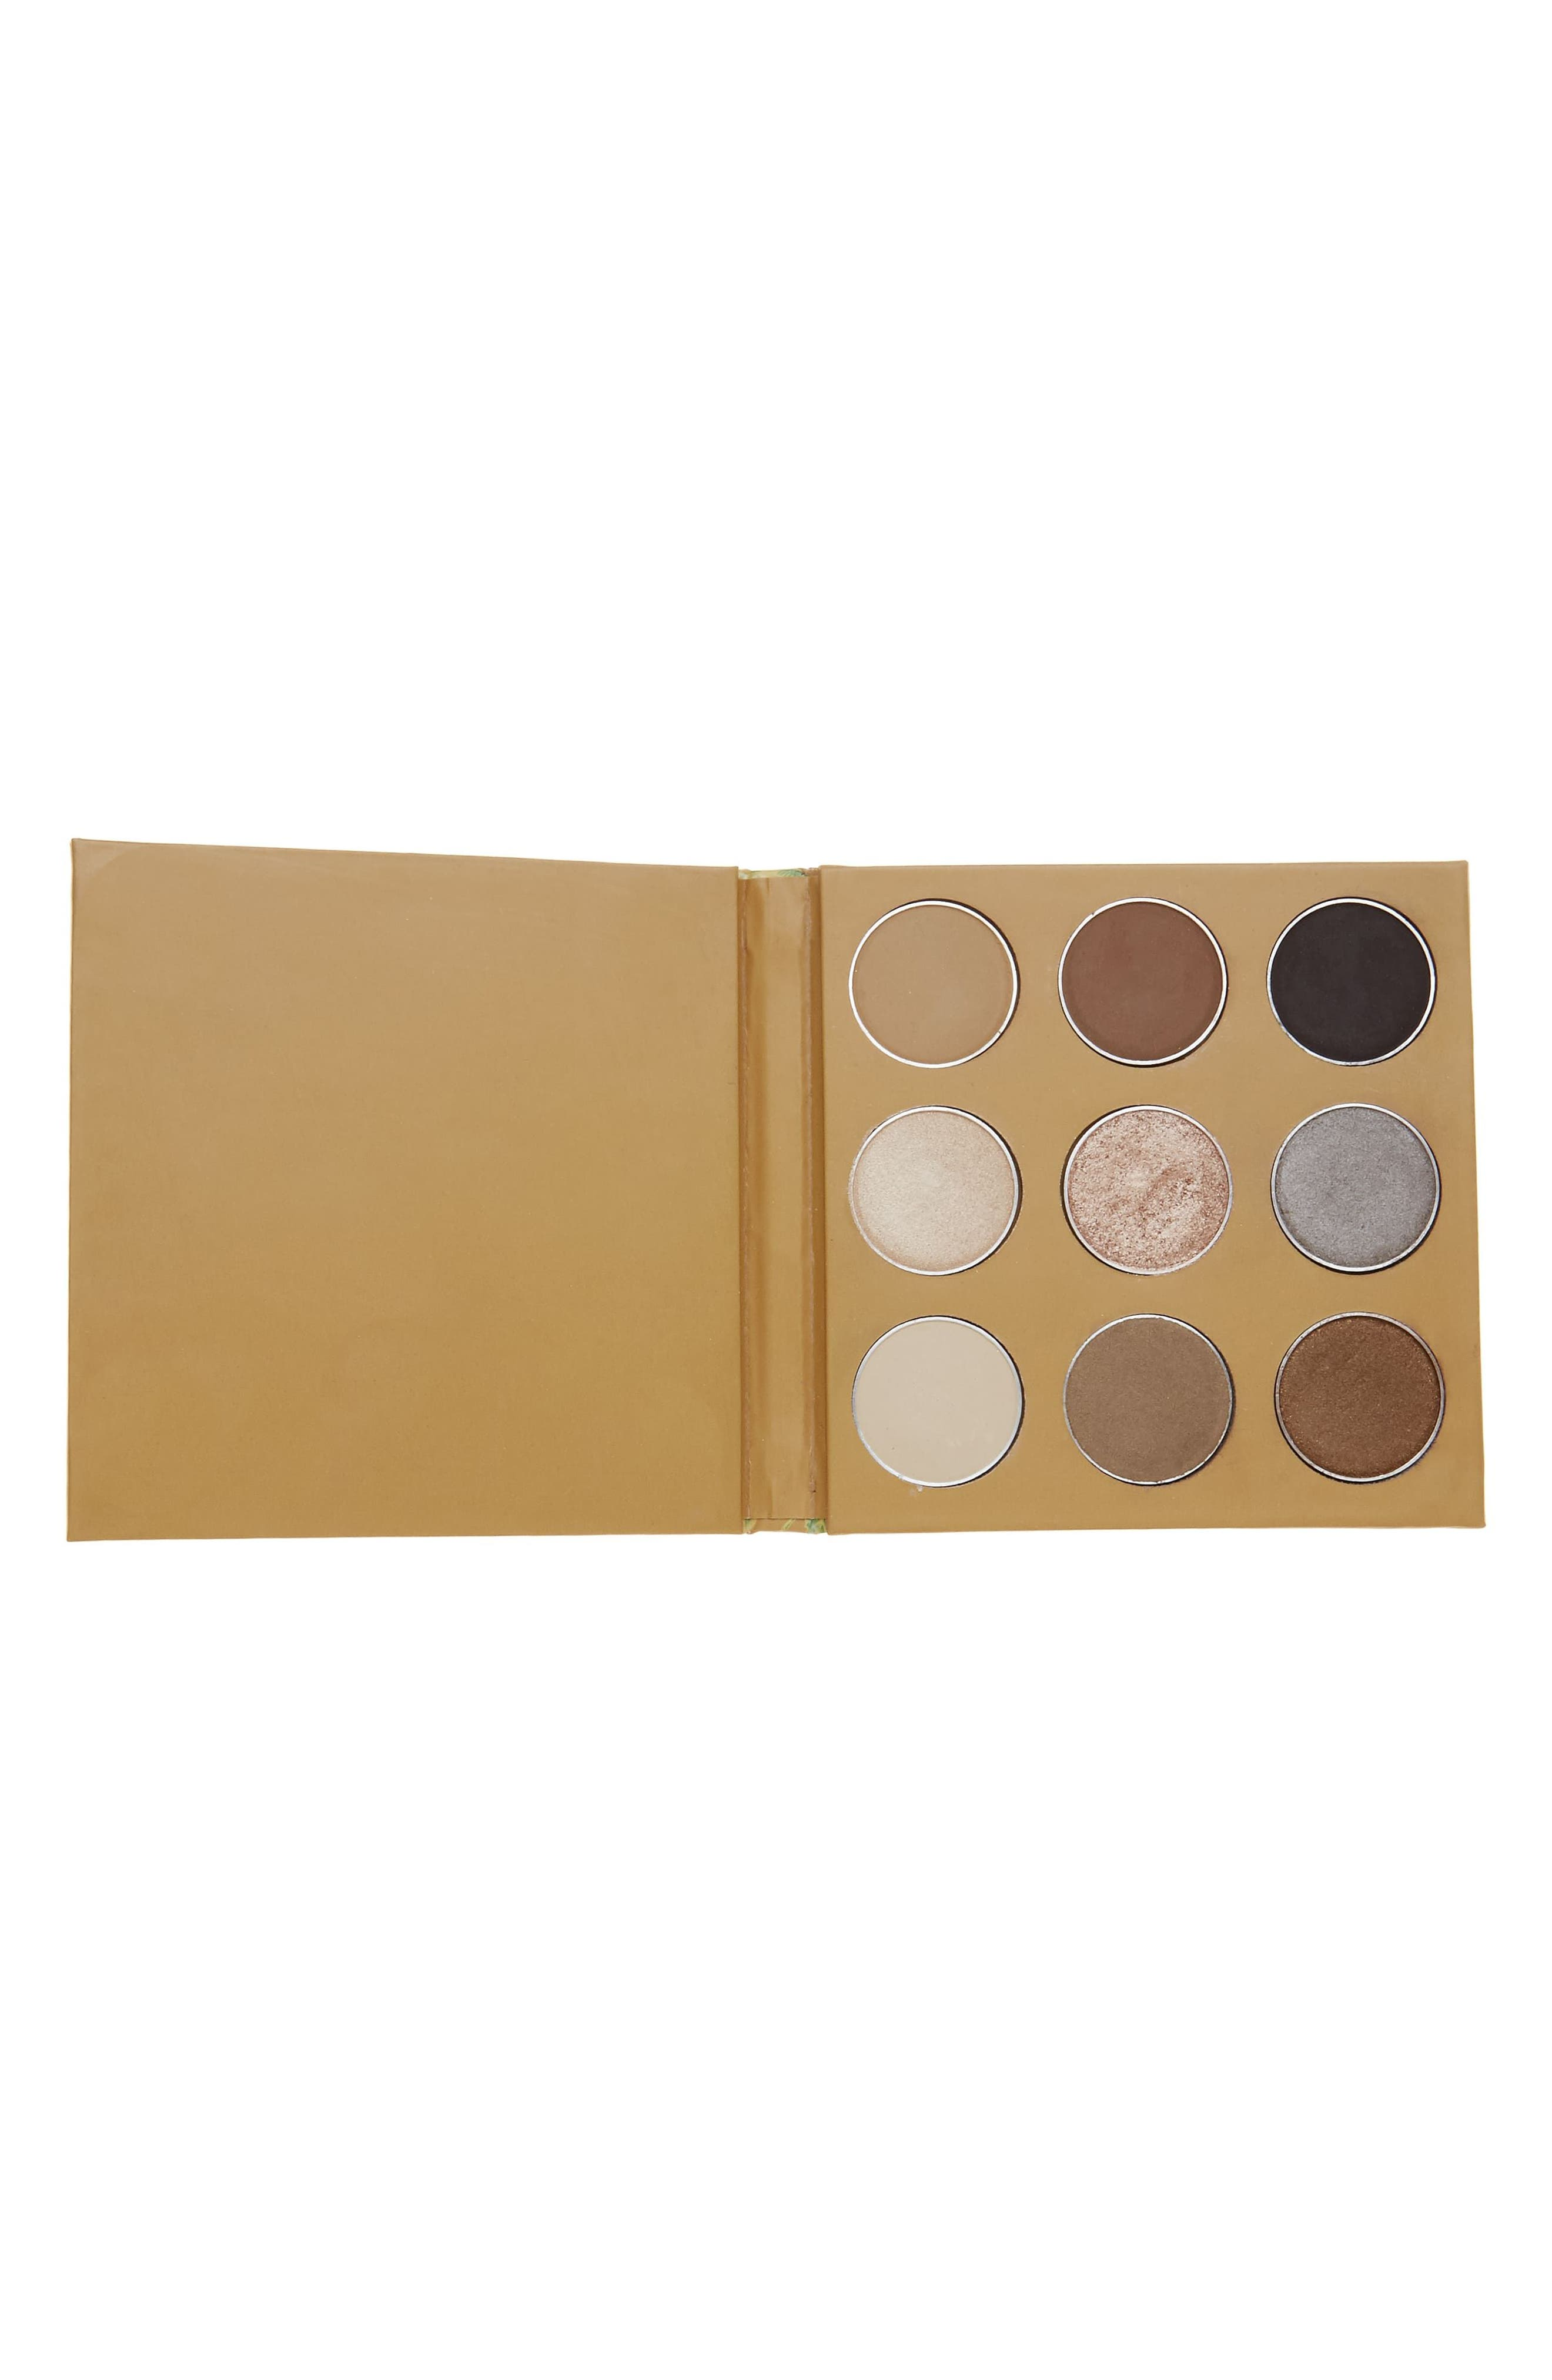 WINKY LUX COFFEE EYESHADOW PALETTE - NO COLOR